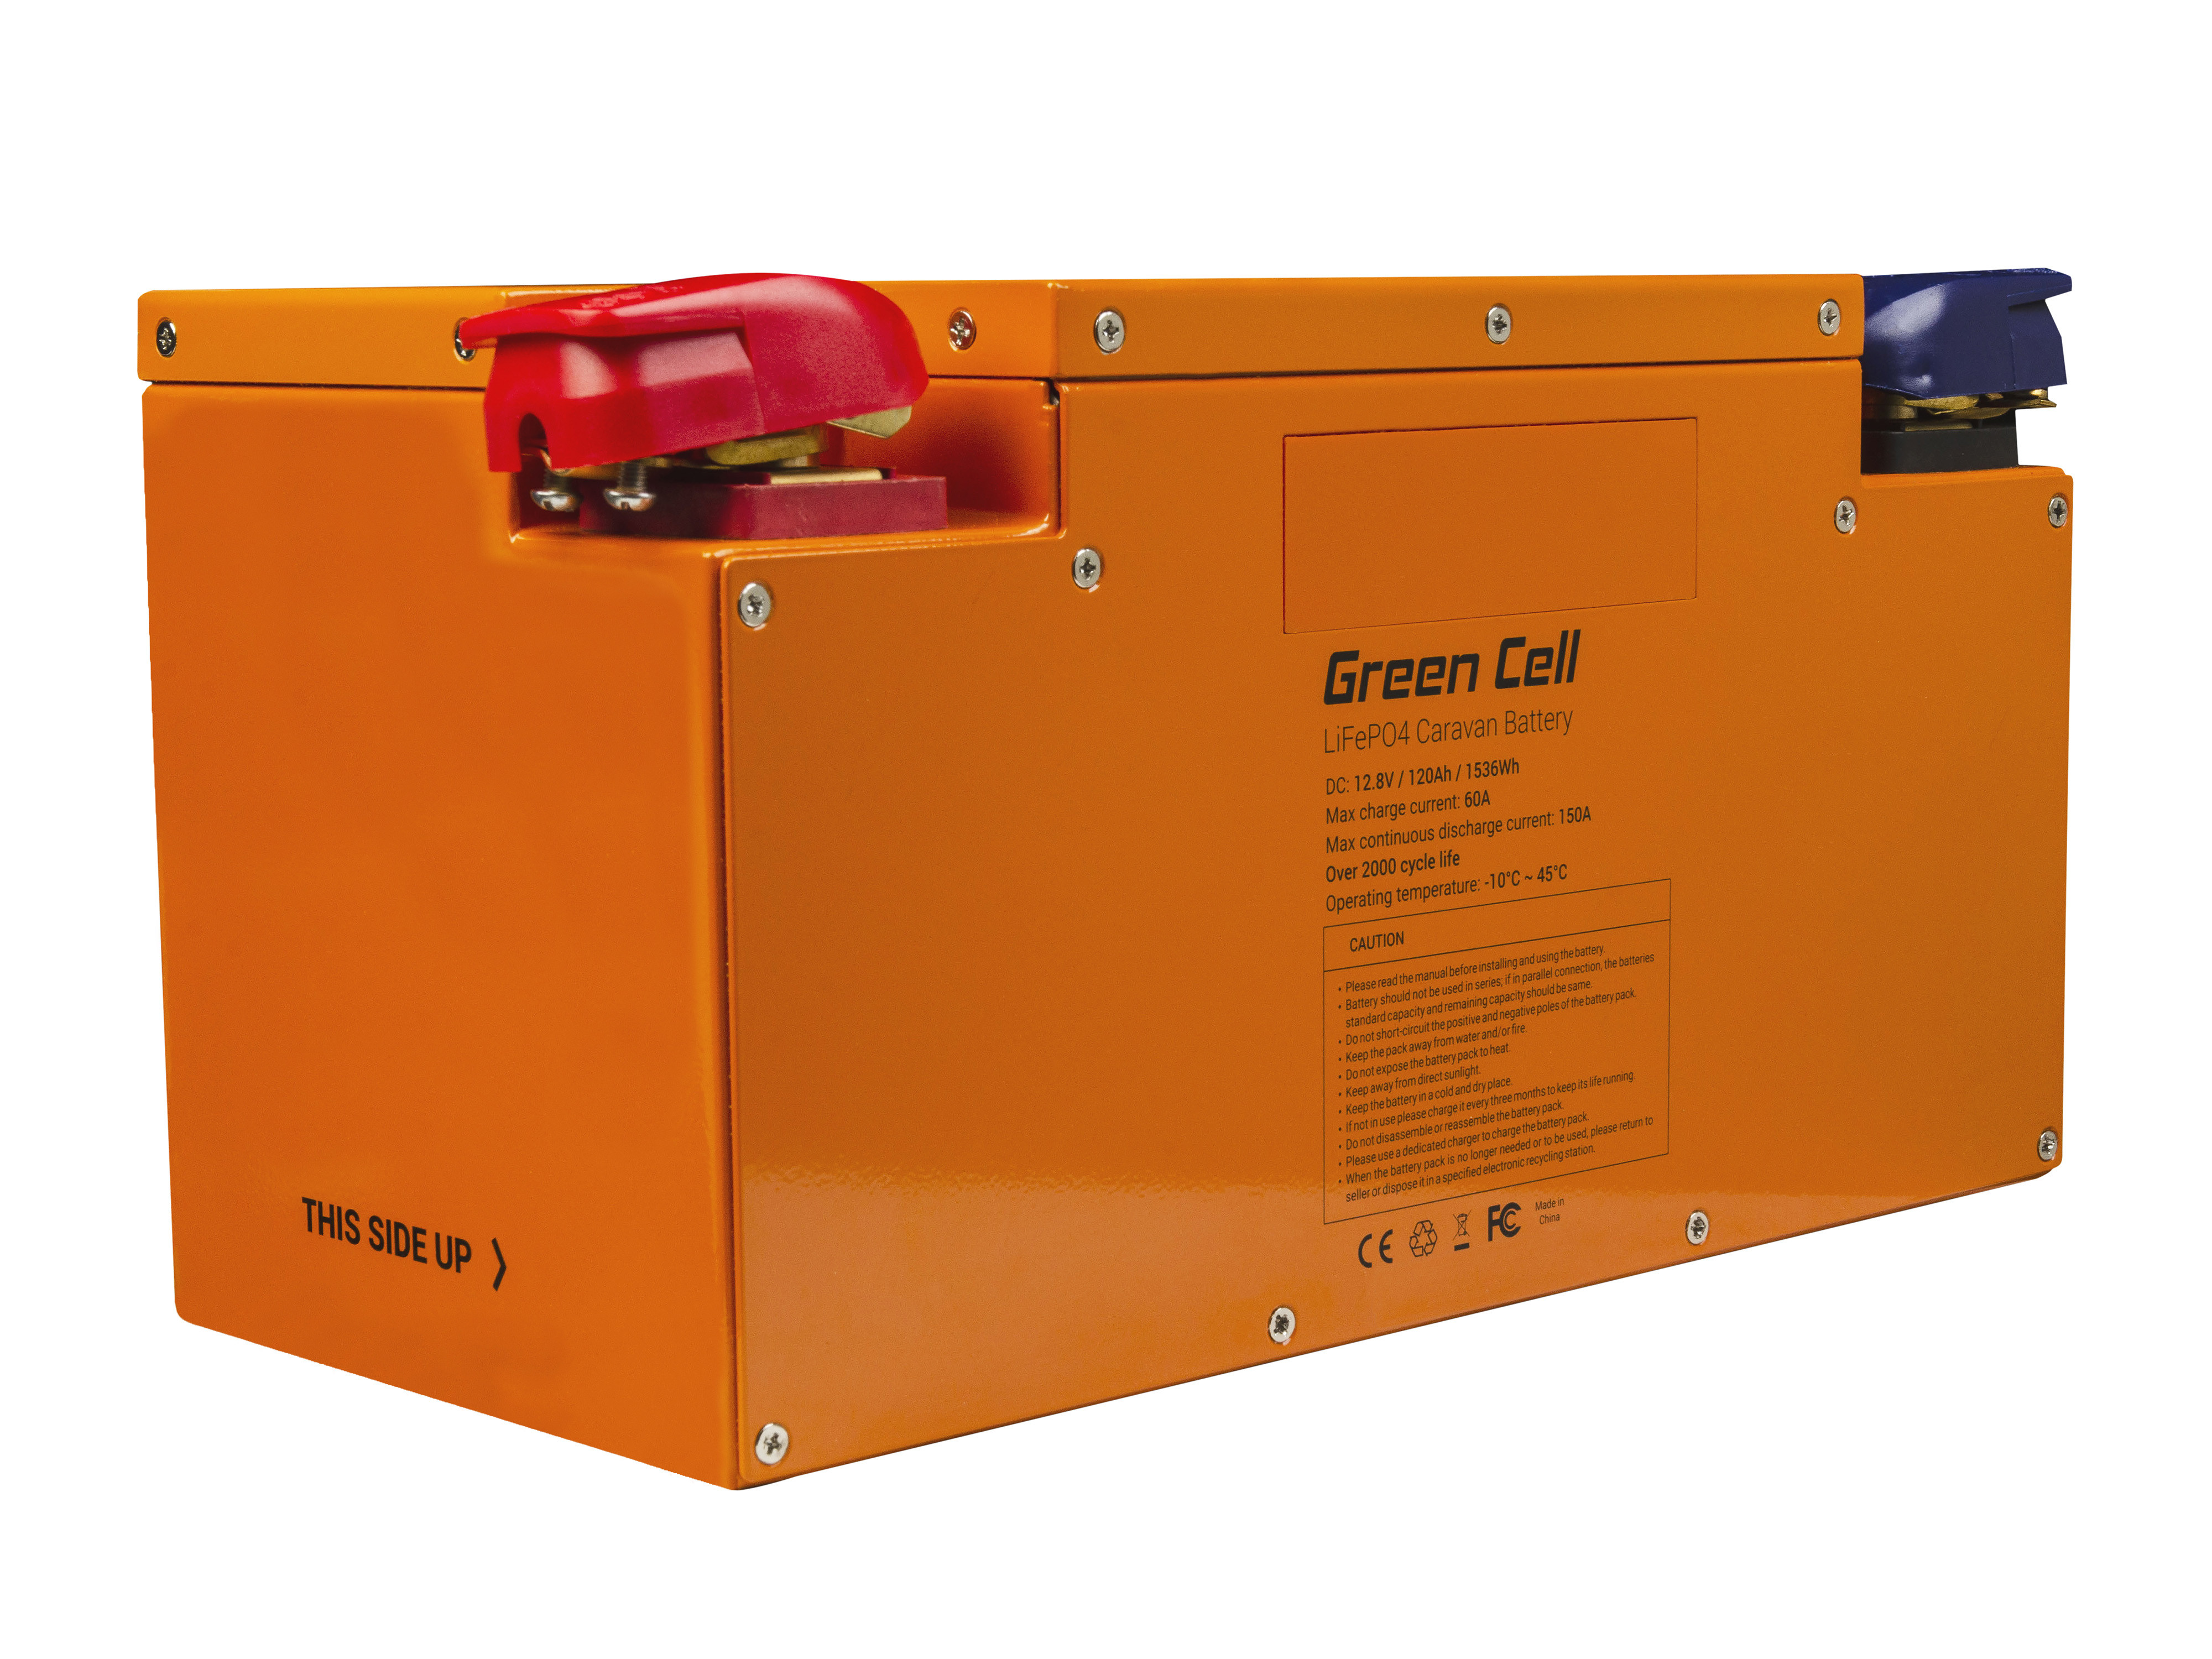 Green Cell LiFePO4 Baterie 120Ah 12.8V 1535Wh